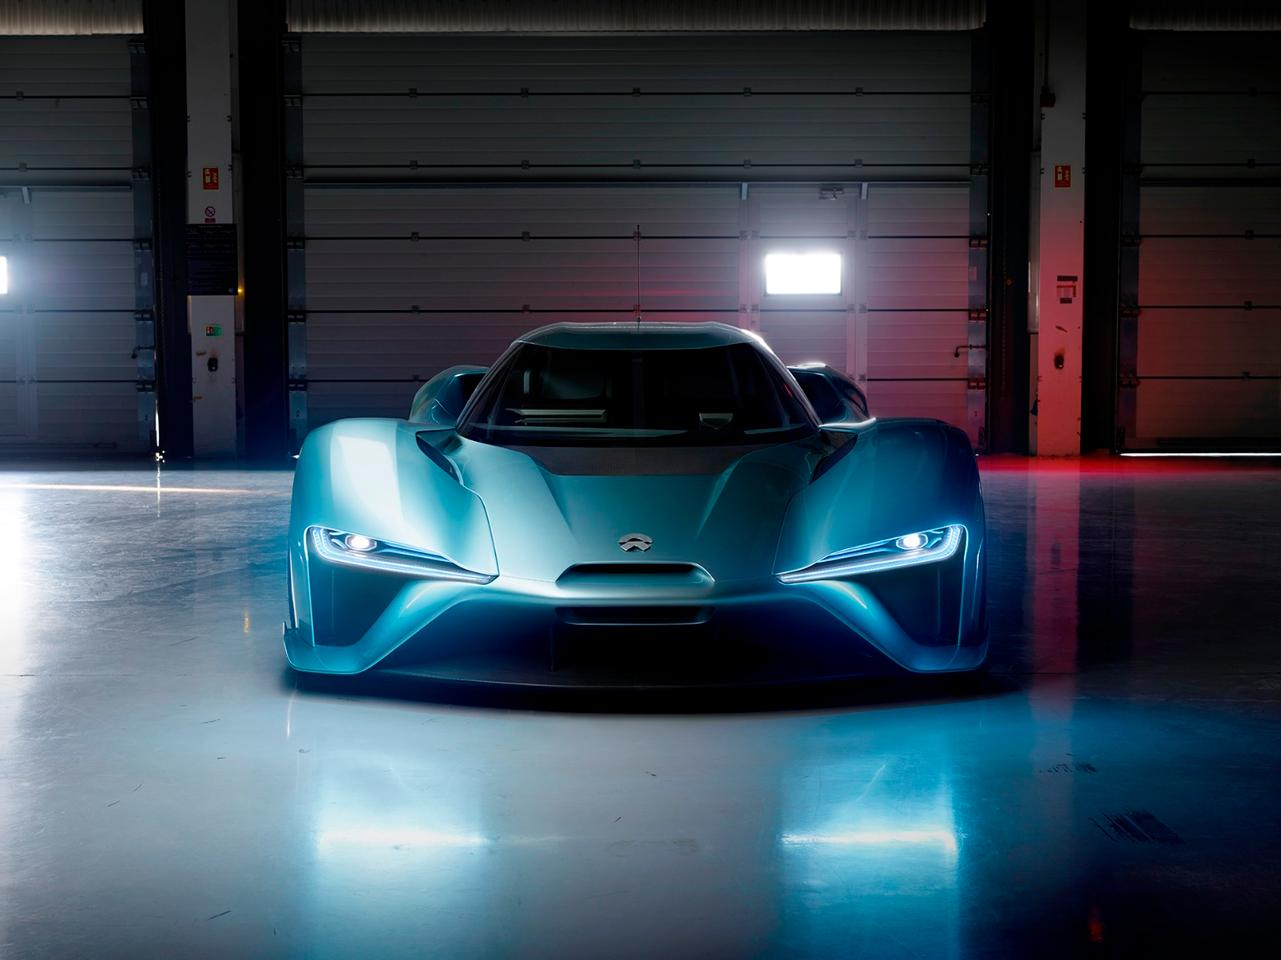 The NextEV NIO EP9 is powered by four electric motors